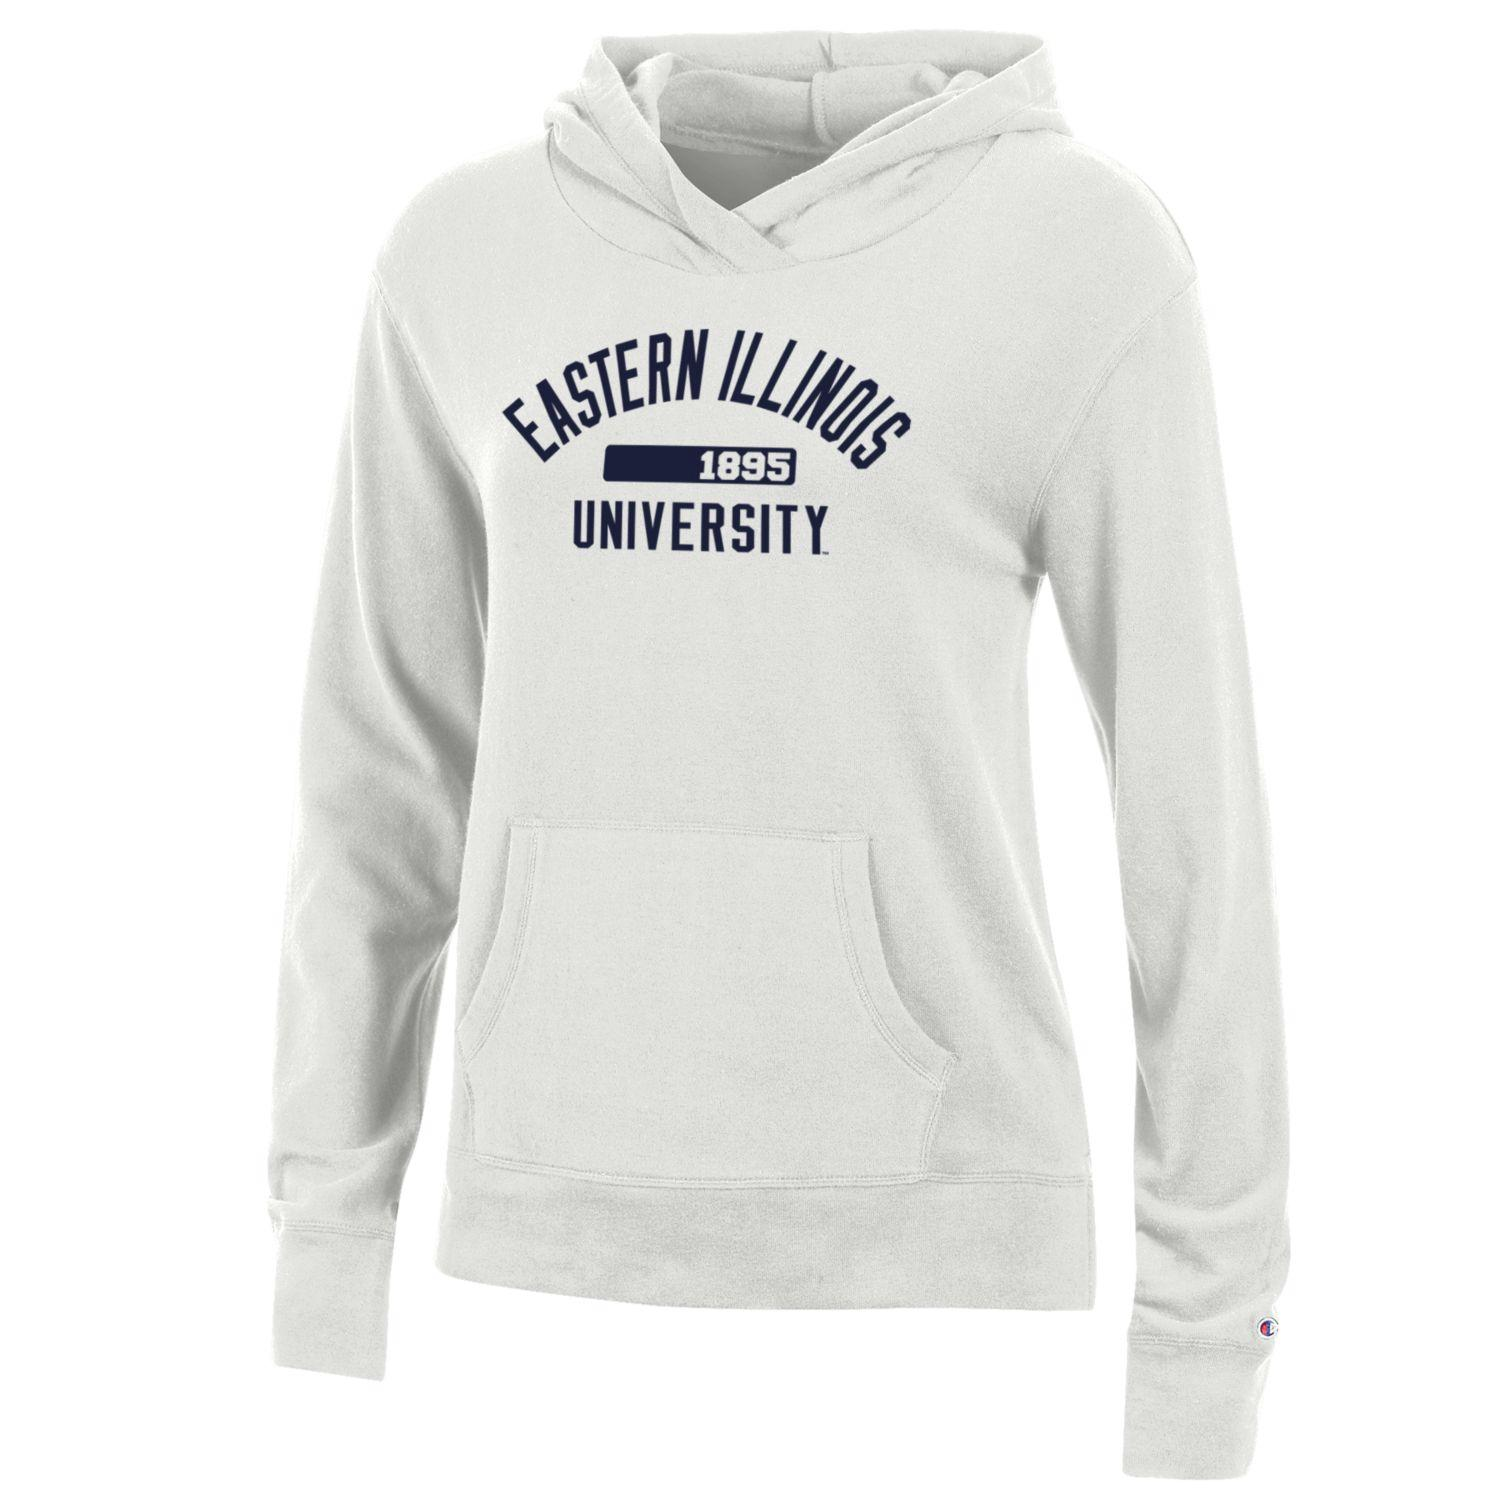 HD LS EIU 1895 - women's